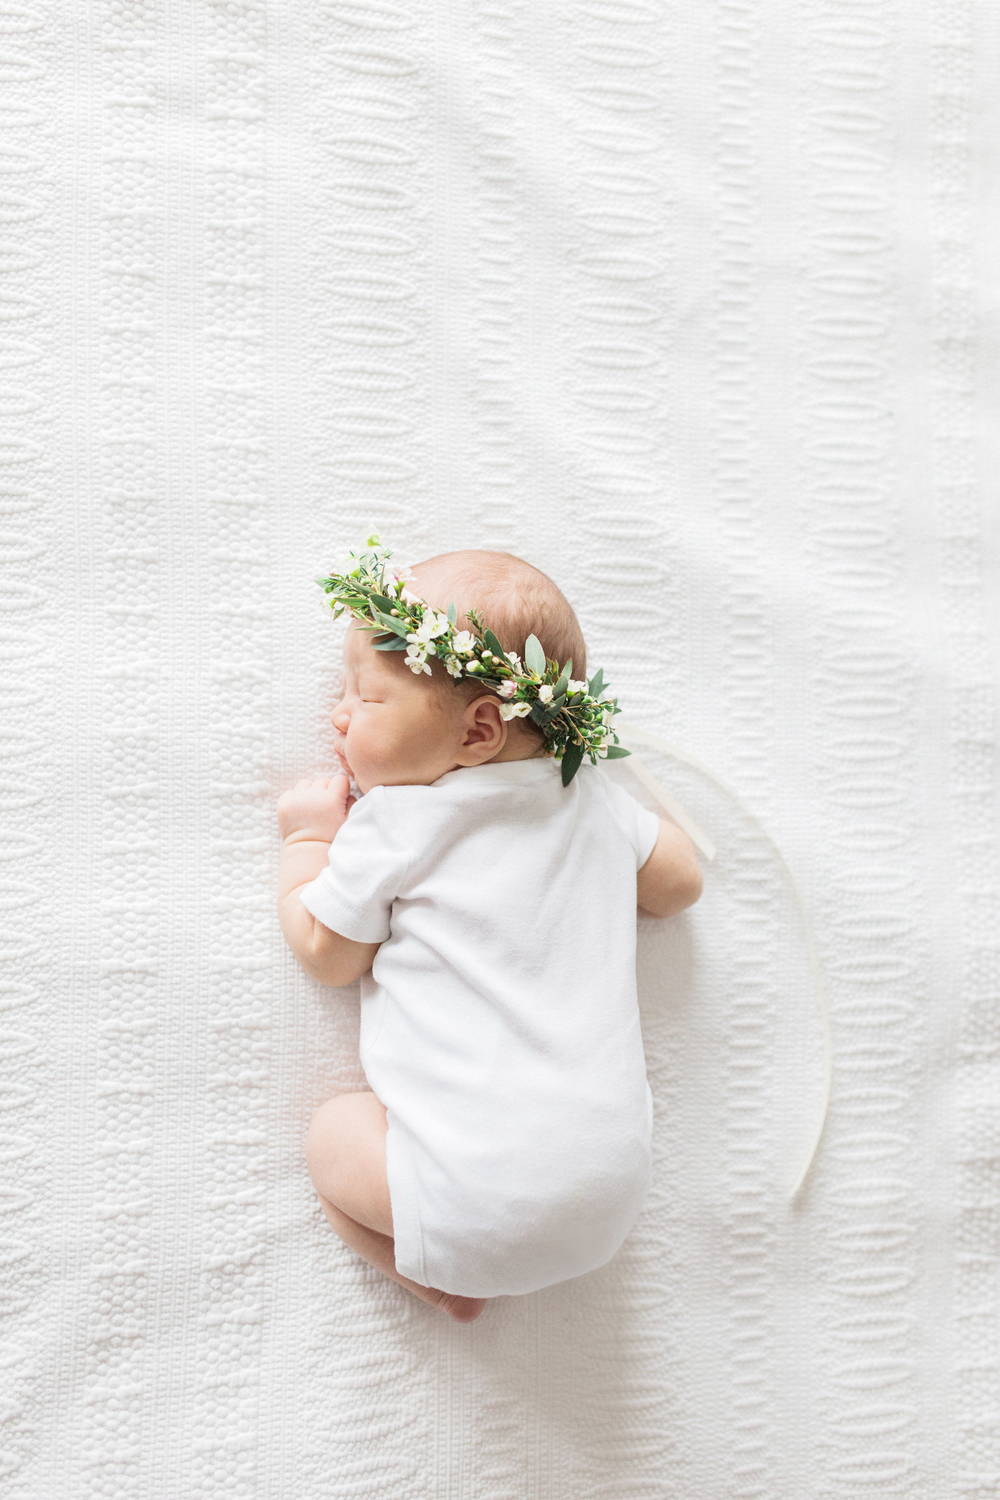 Elza Photographie - Toronto newborn photographer - Film and digital - Bright and airy - Mastin Labs - Motherhood